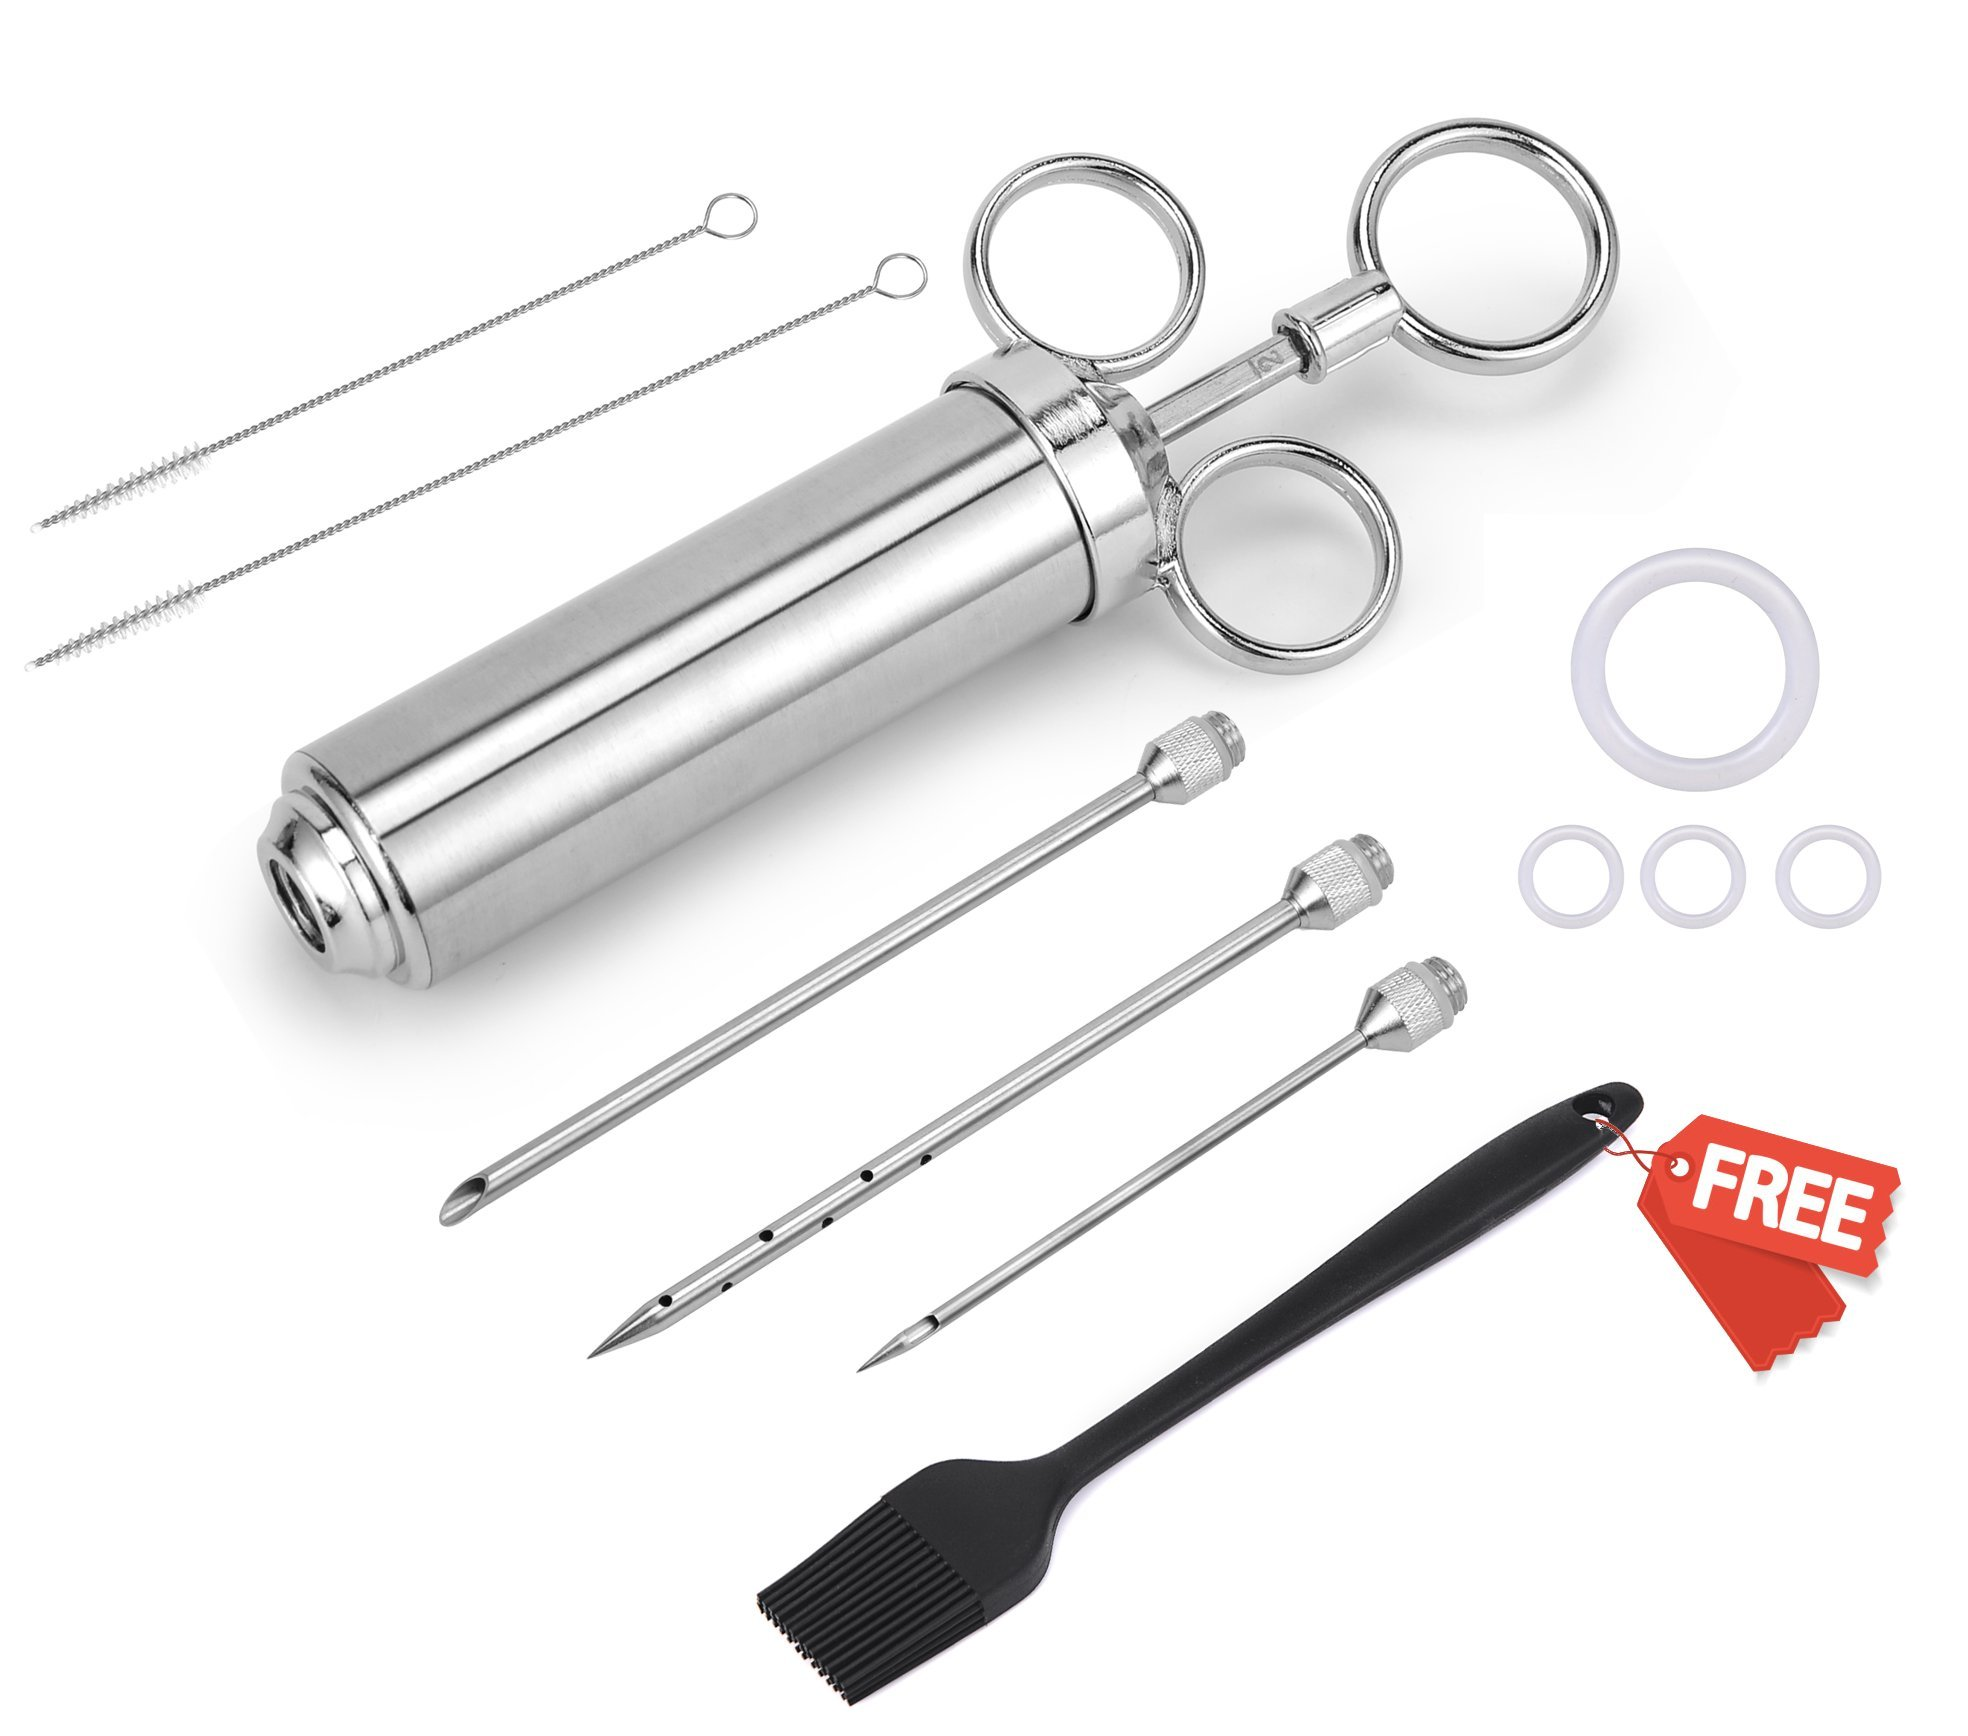 Meat Injector Syringe 304 Stainless Steel,XZSUN 2-oz Injector Syringe Kitwith 3 Needles, 2 Cleaning Brushes,1 Basting Brush and 4 Silicone O-rings